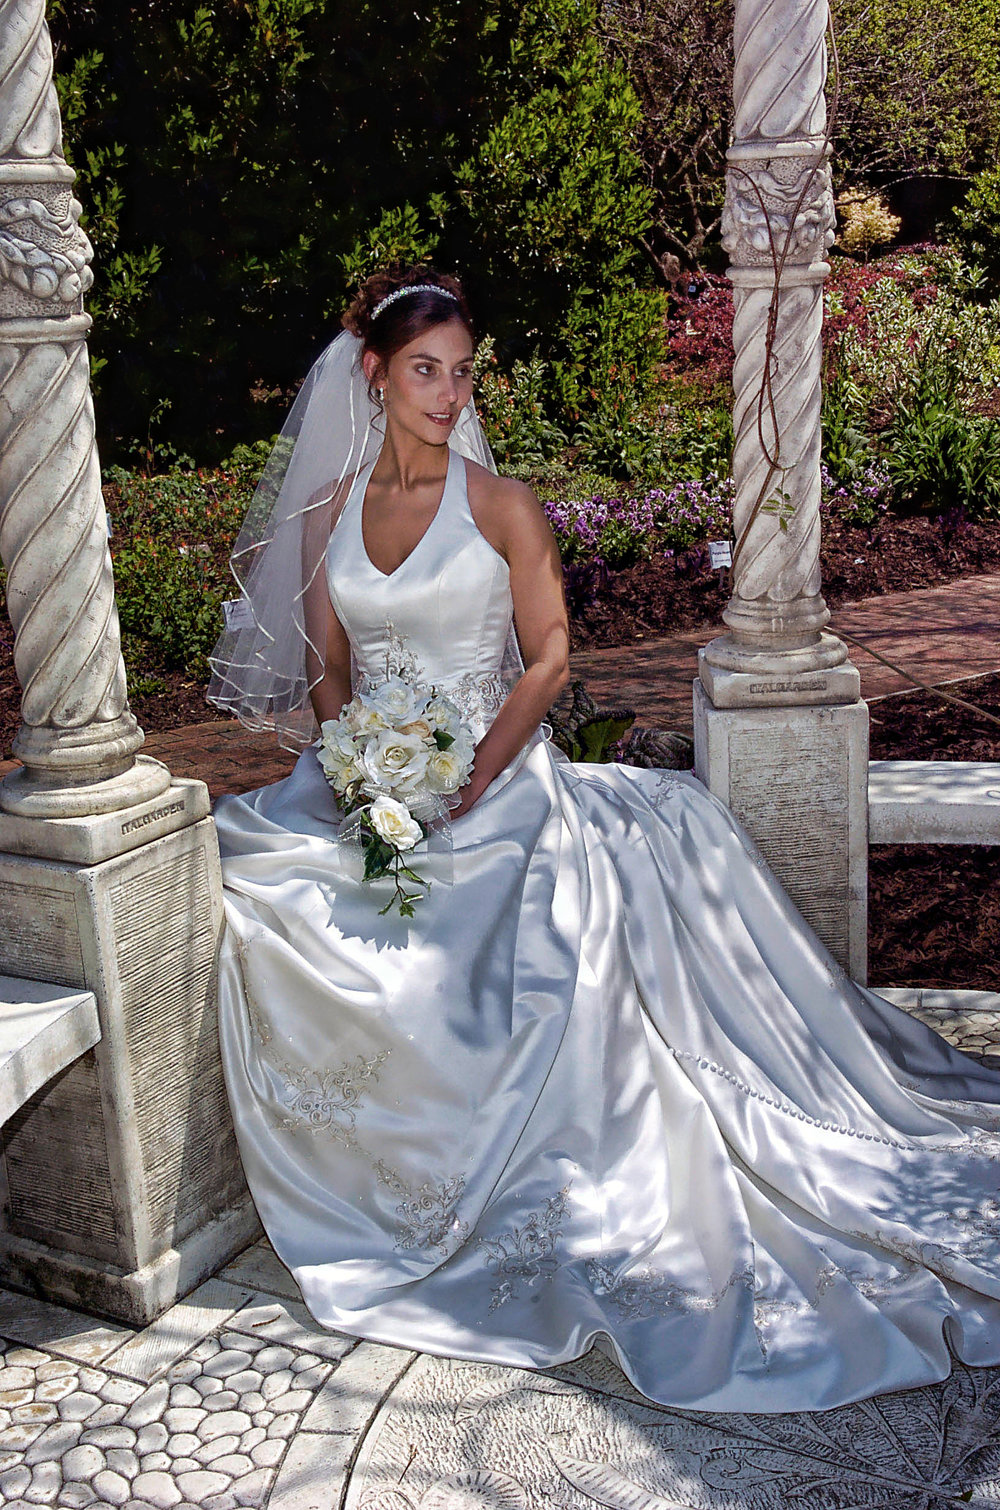 Bridal portrait at Arboretum in Wilmington, NC.